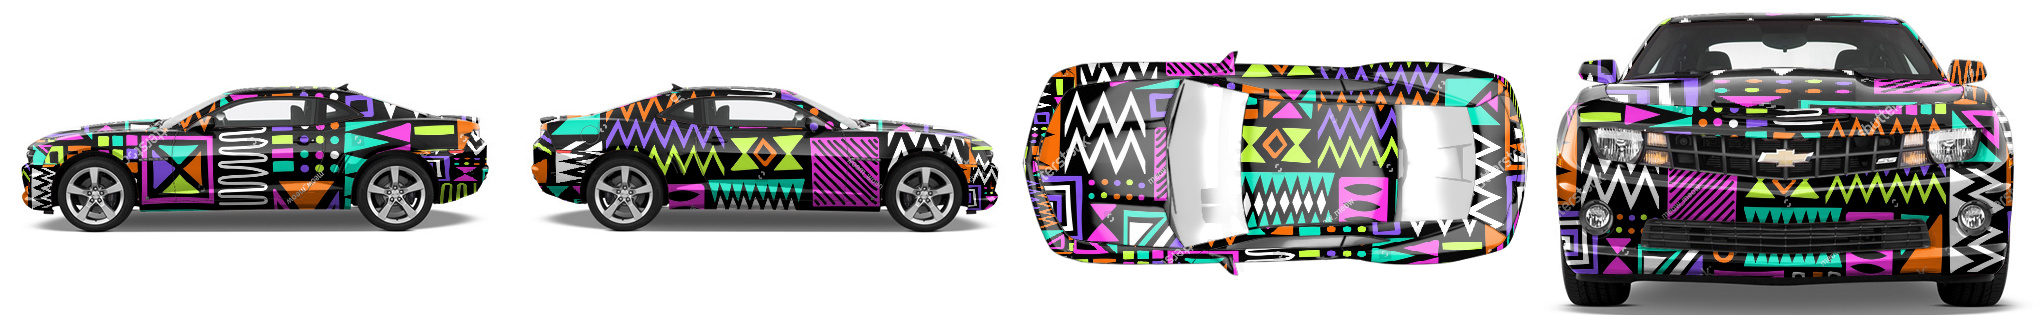 Muscle Car Wrap #52663